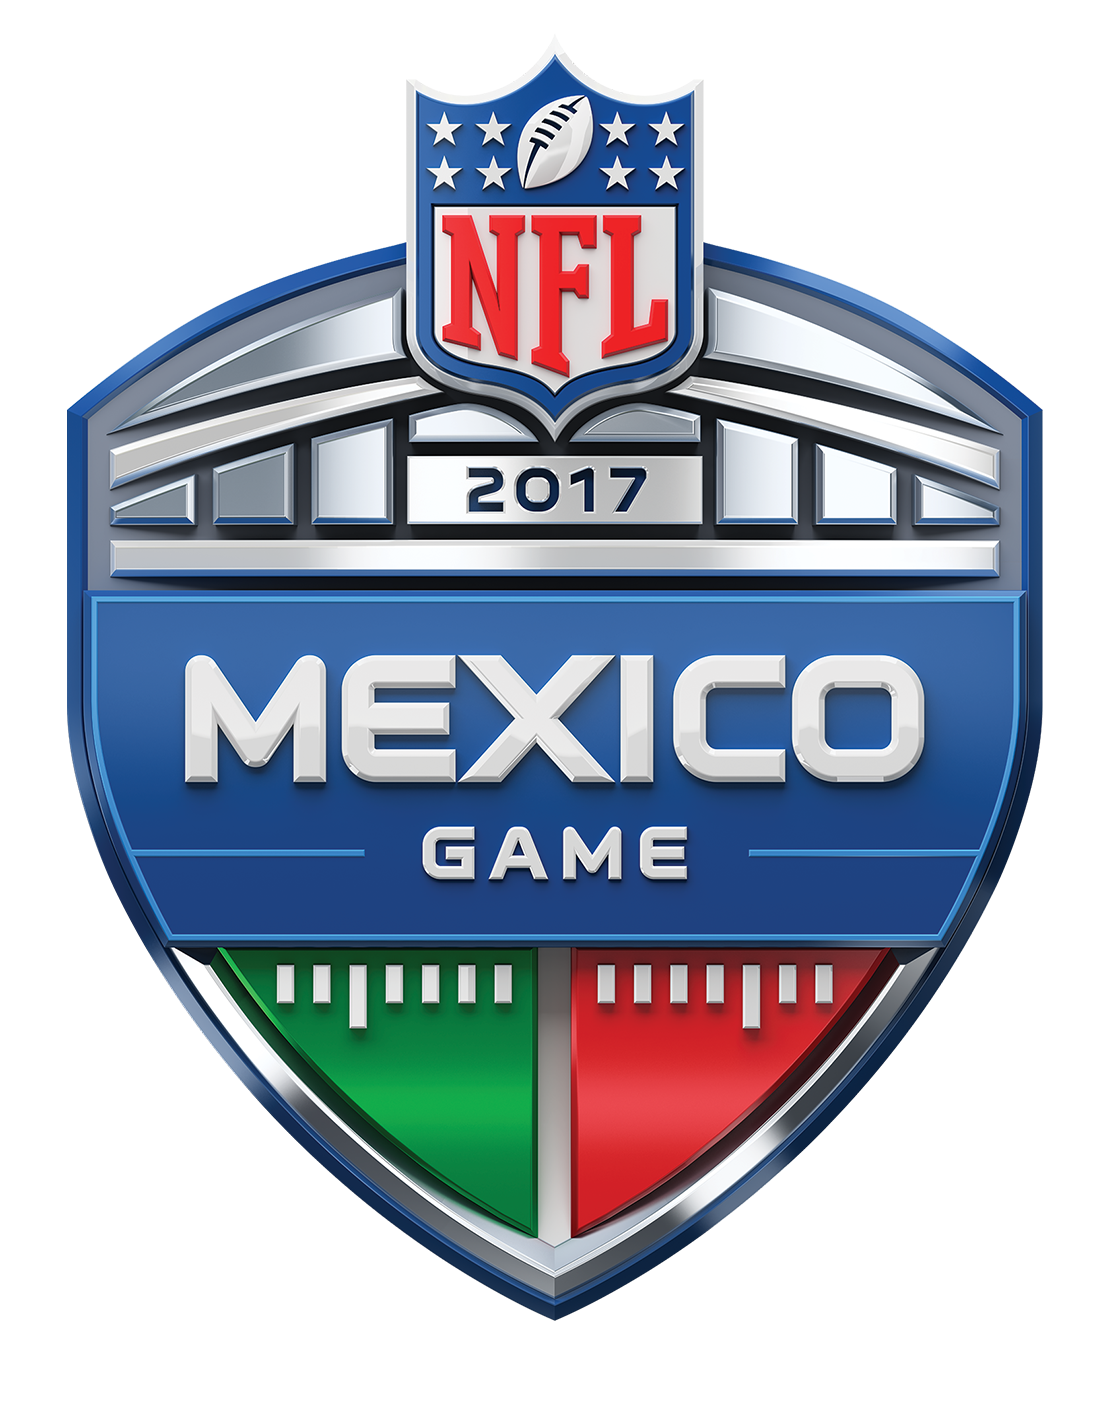 https://static.nfl.com/static/content/public/static/img/events/NFL_2017_MexicoGames_WEB.png